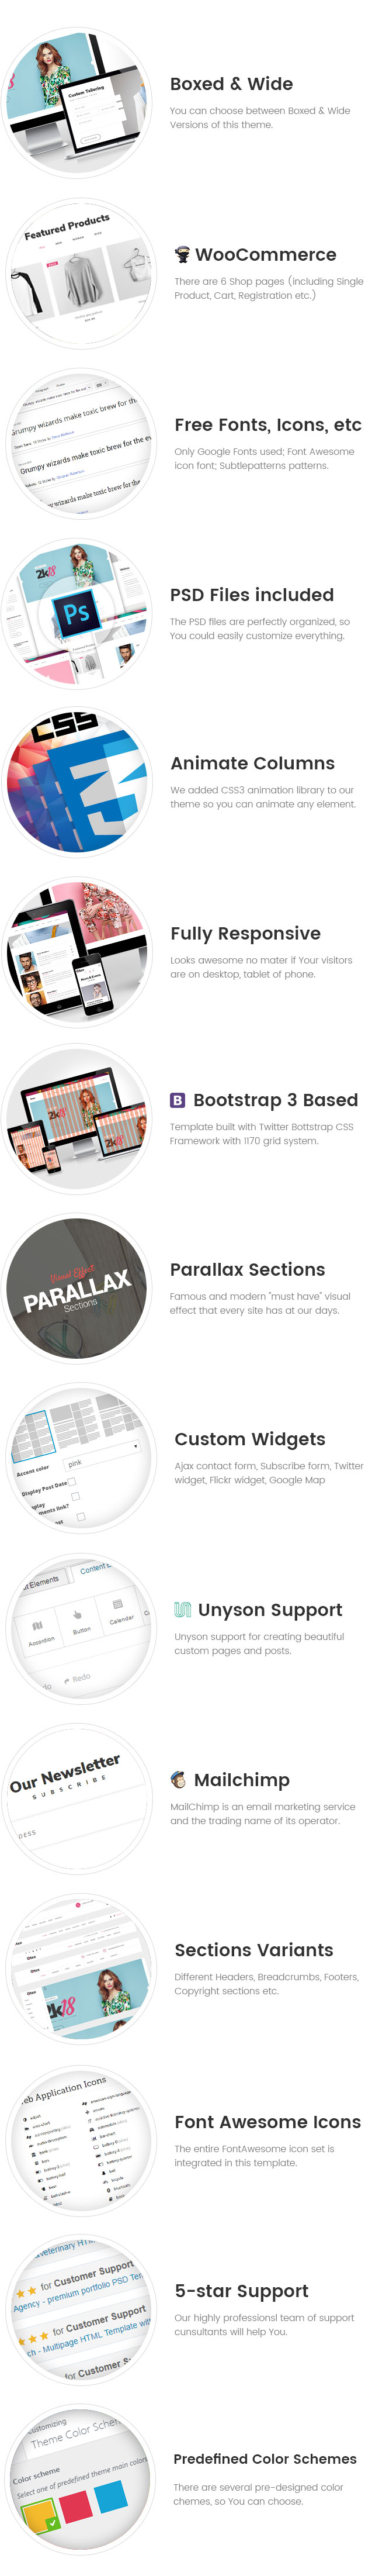 Qtex - Manufacturing and Clothing Company WordPress theme